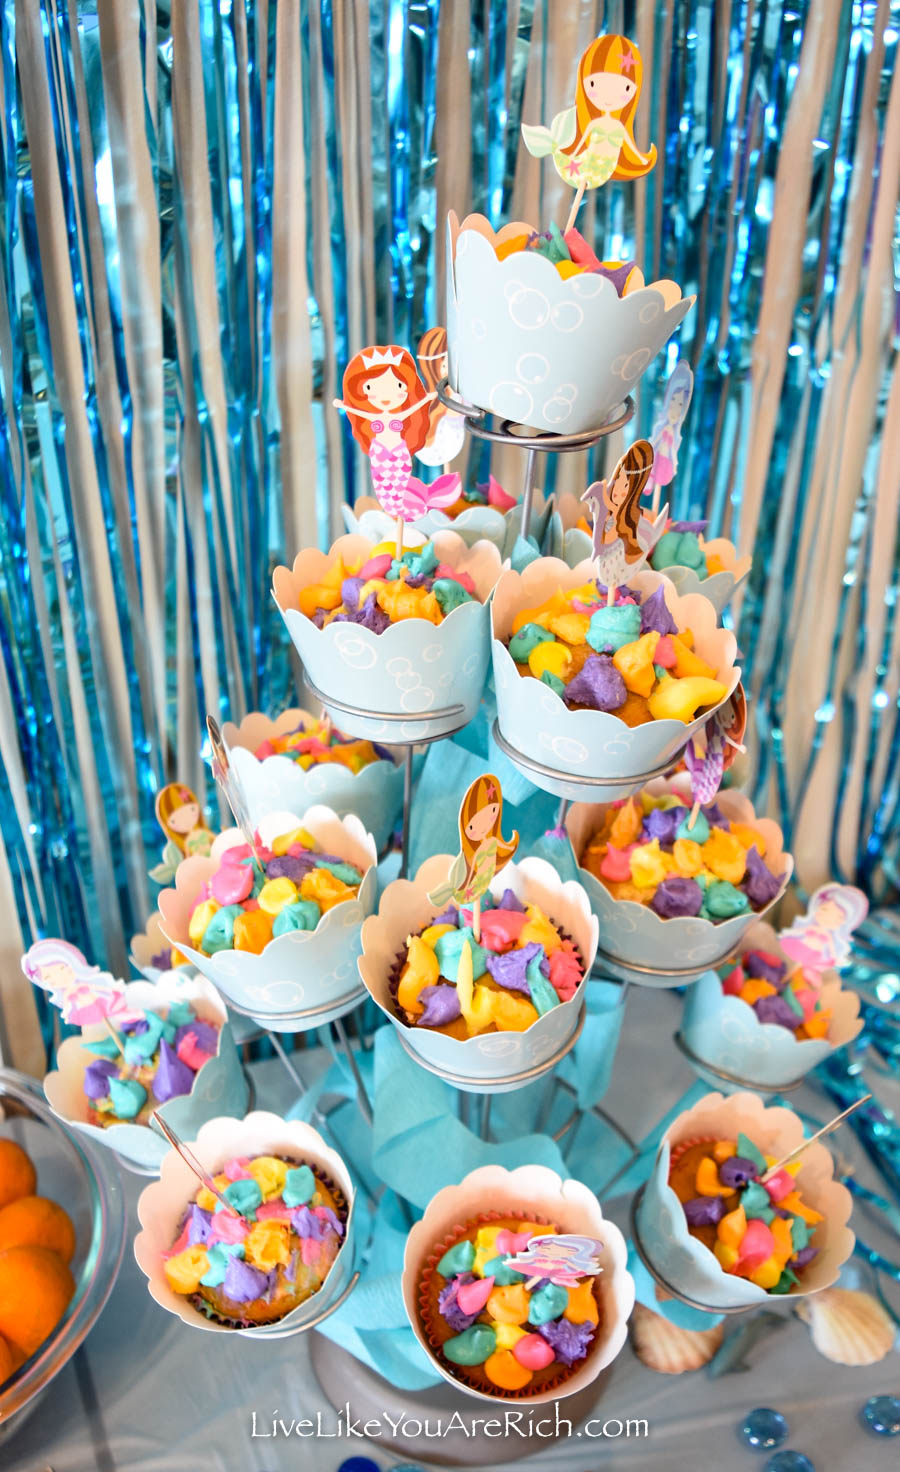 Mermaid Under the Sea Party: Food - Mermaid Coral Cupcakes